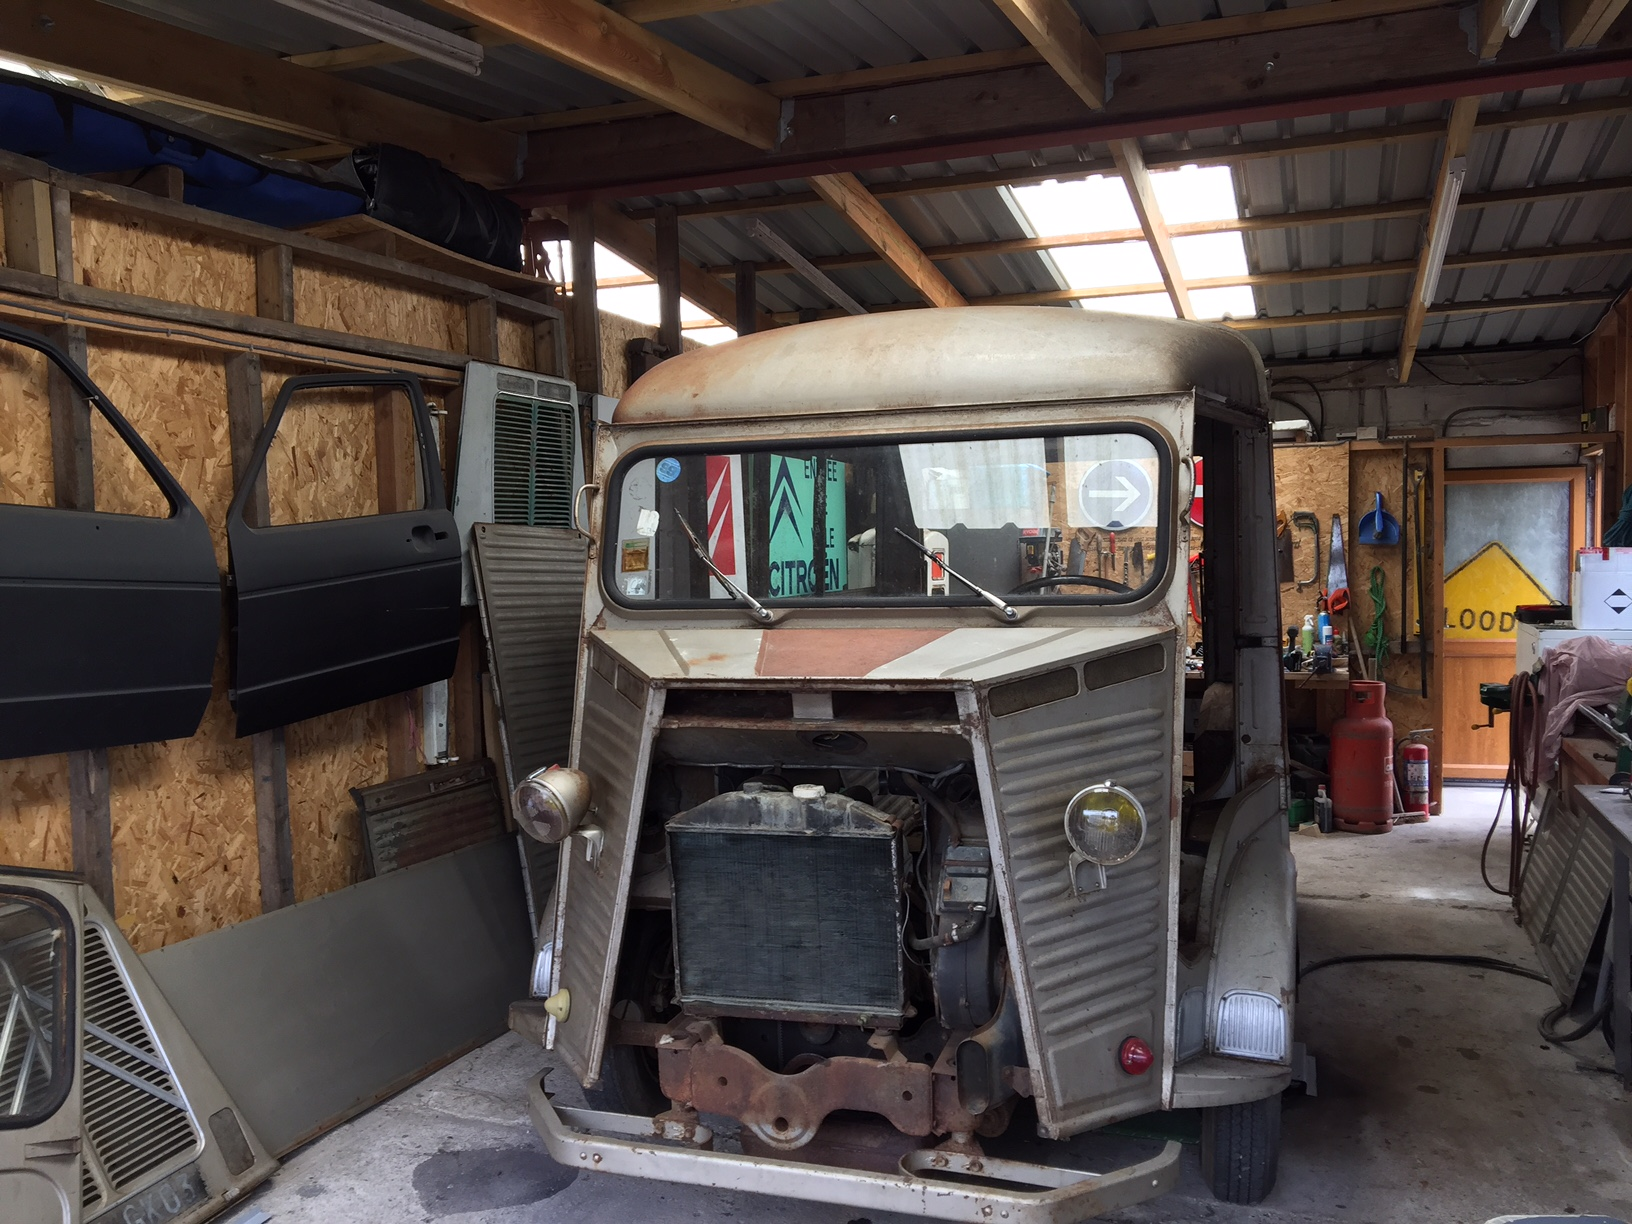 1964 Citroen Hy van twin hatch restoration